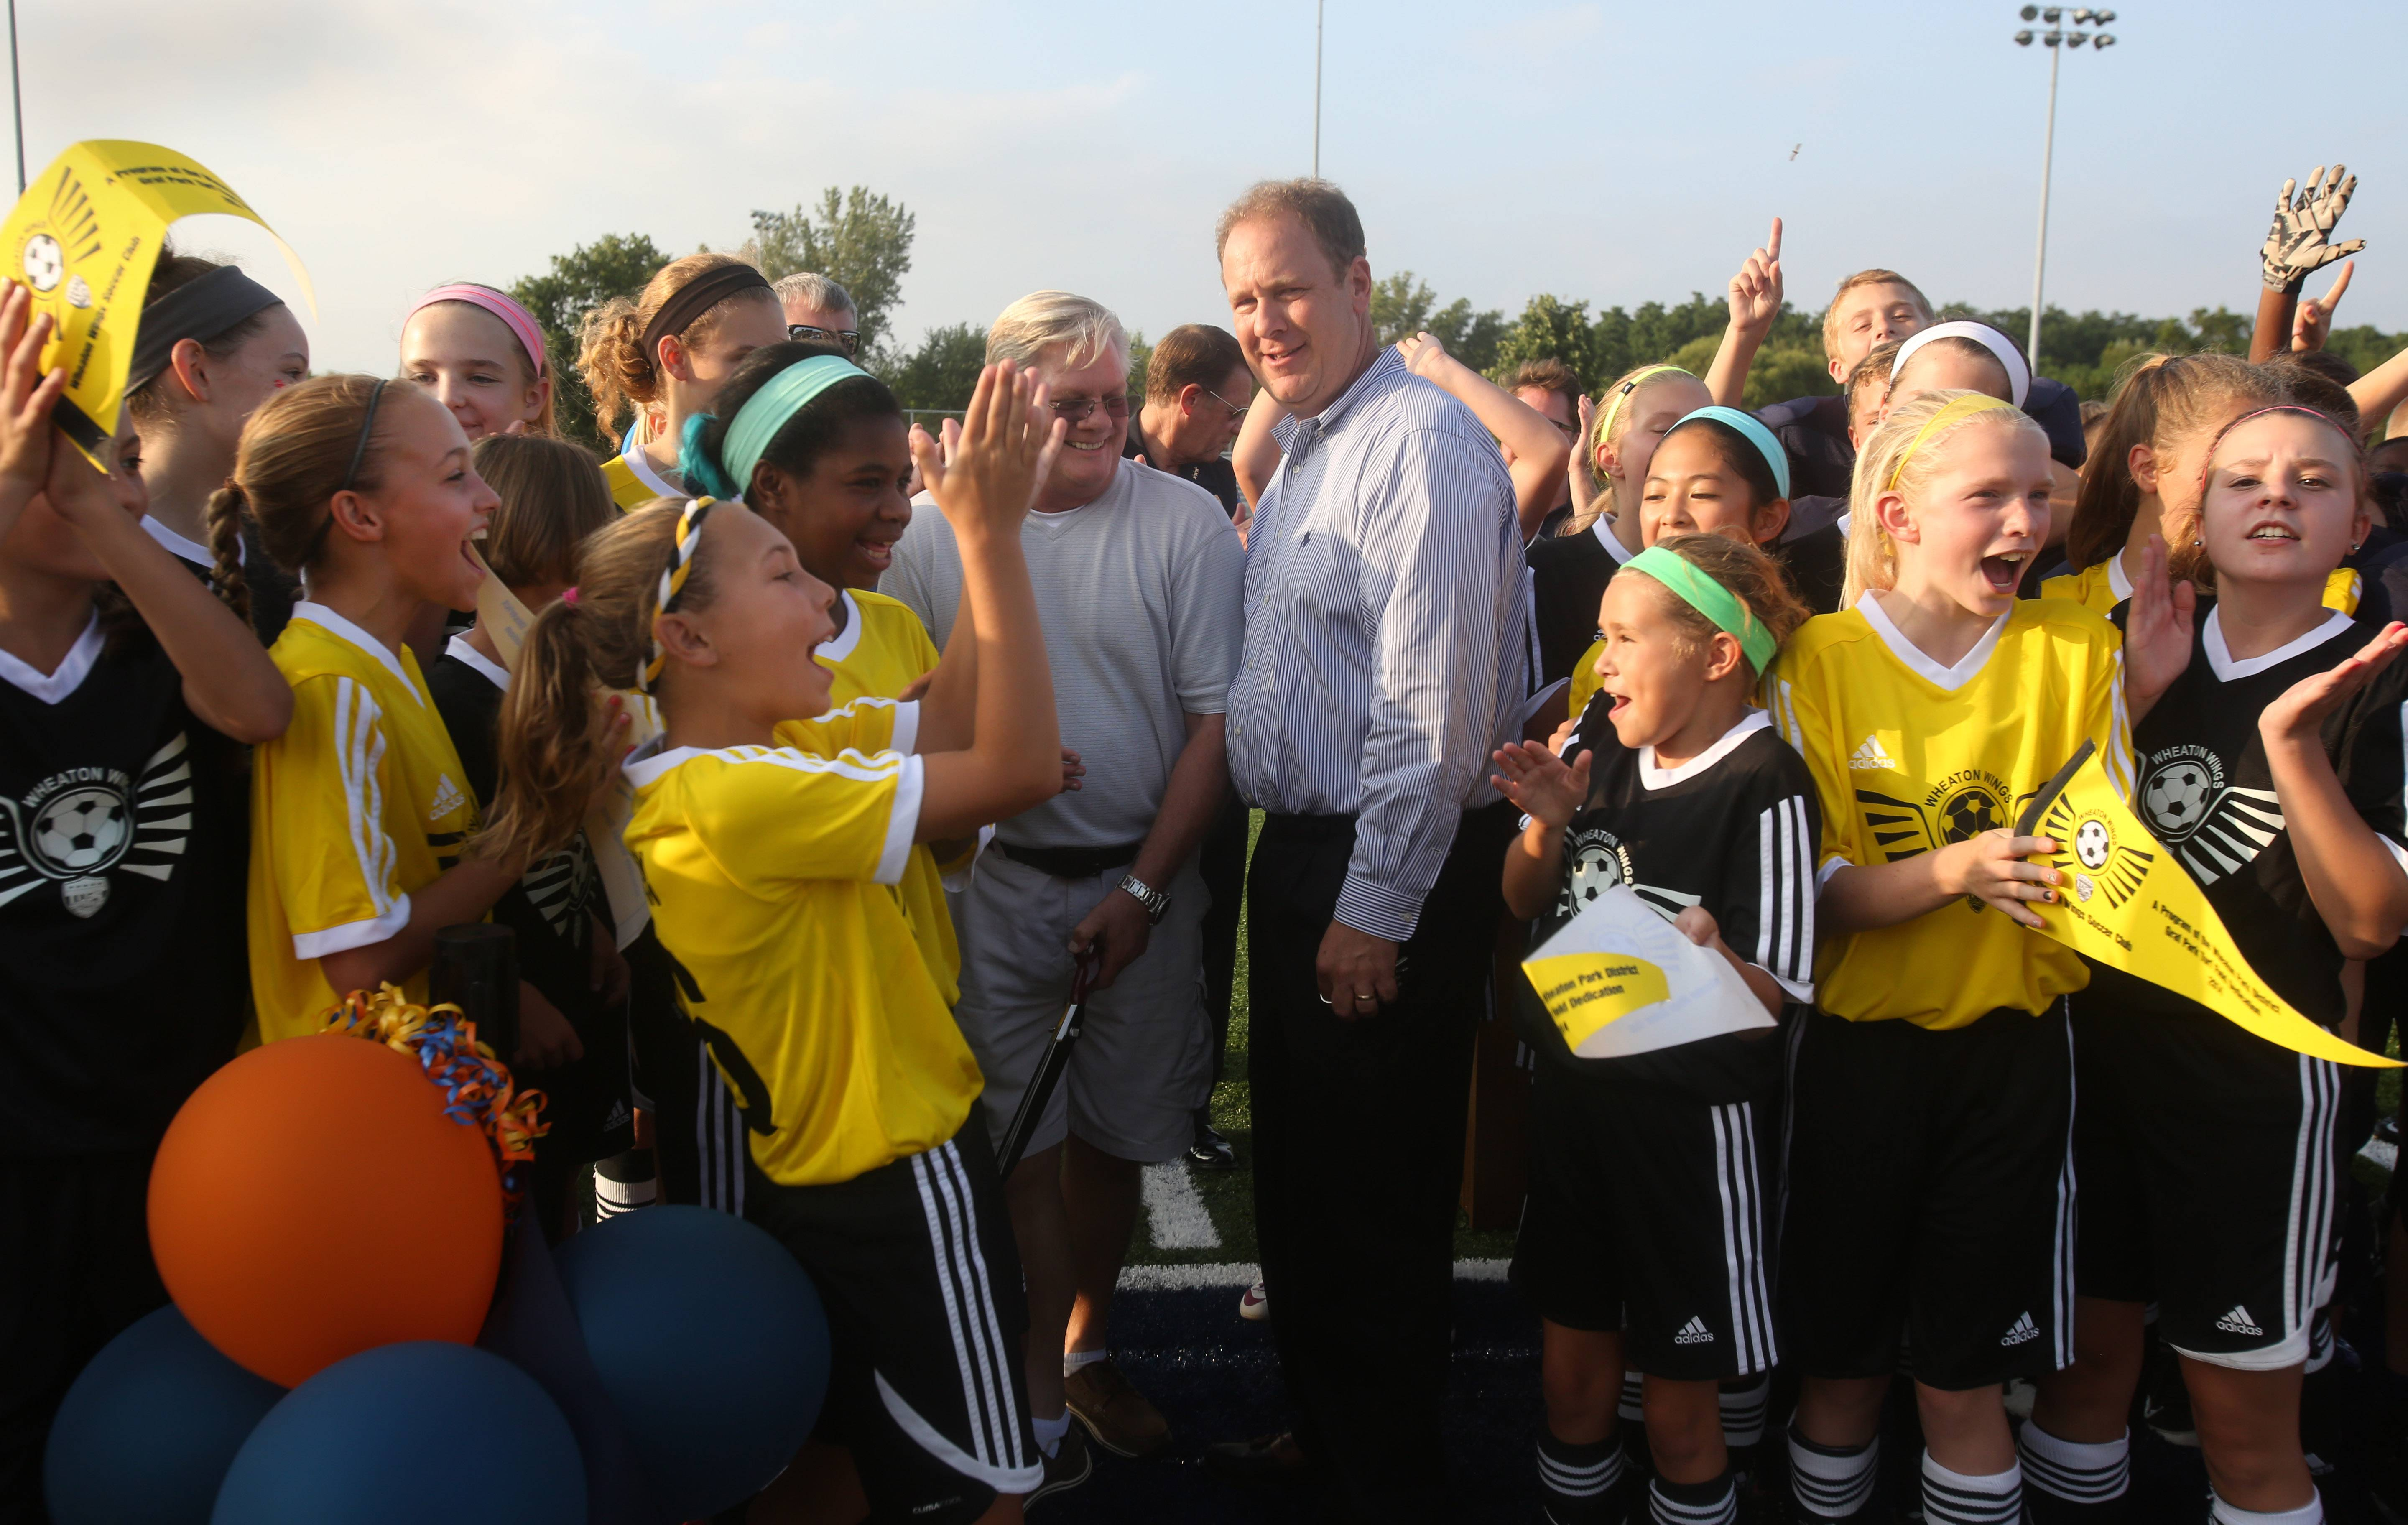 Wheaton Park District Commissioner Ray Morrill and Bill Farley assistant superintendent of Community Unit District 200, are cheered by Wheaton Wings youth soccer players after officially dedicating the installation of a new synthetic turf at Wheaton's Graf Park.